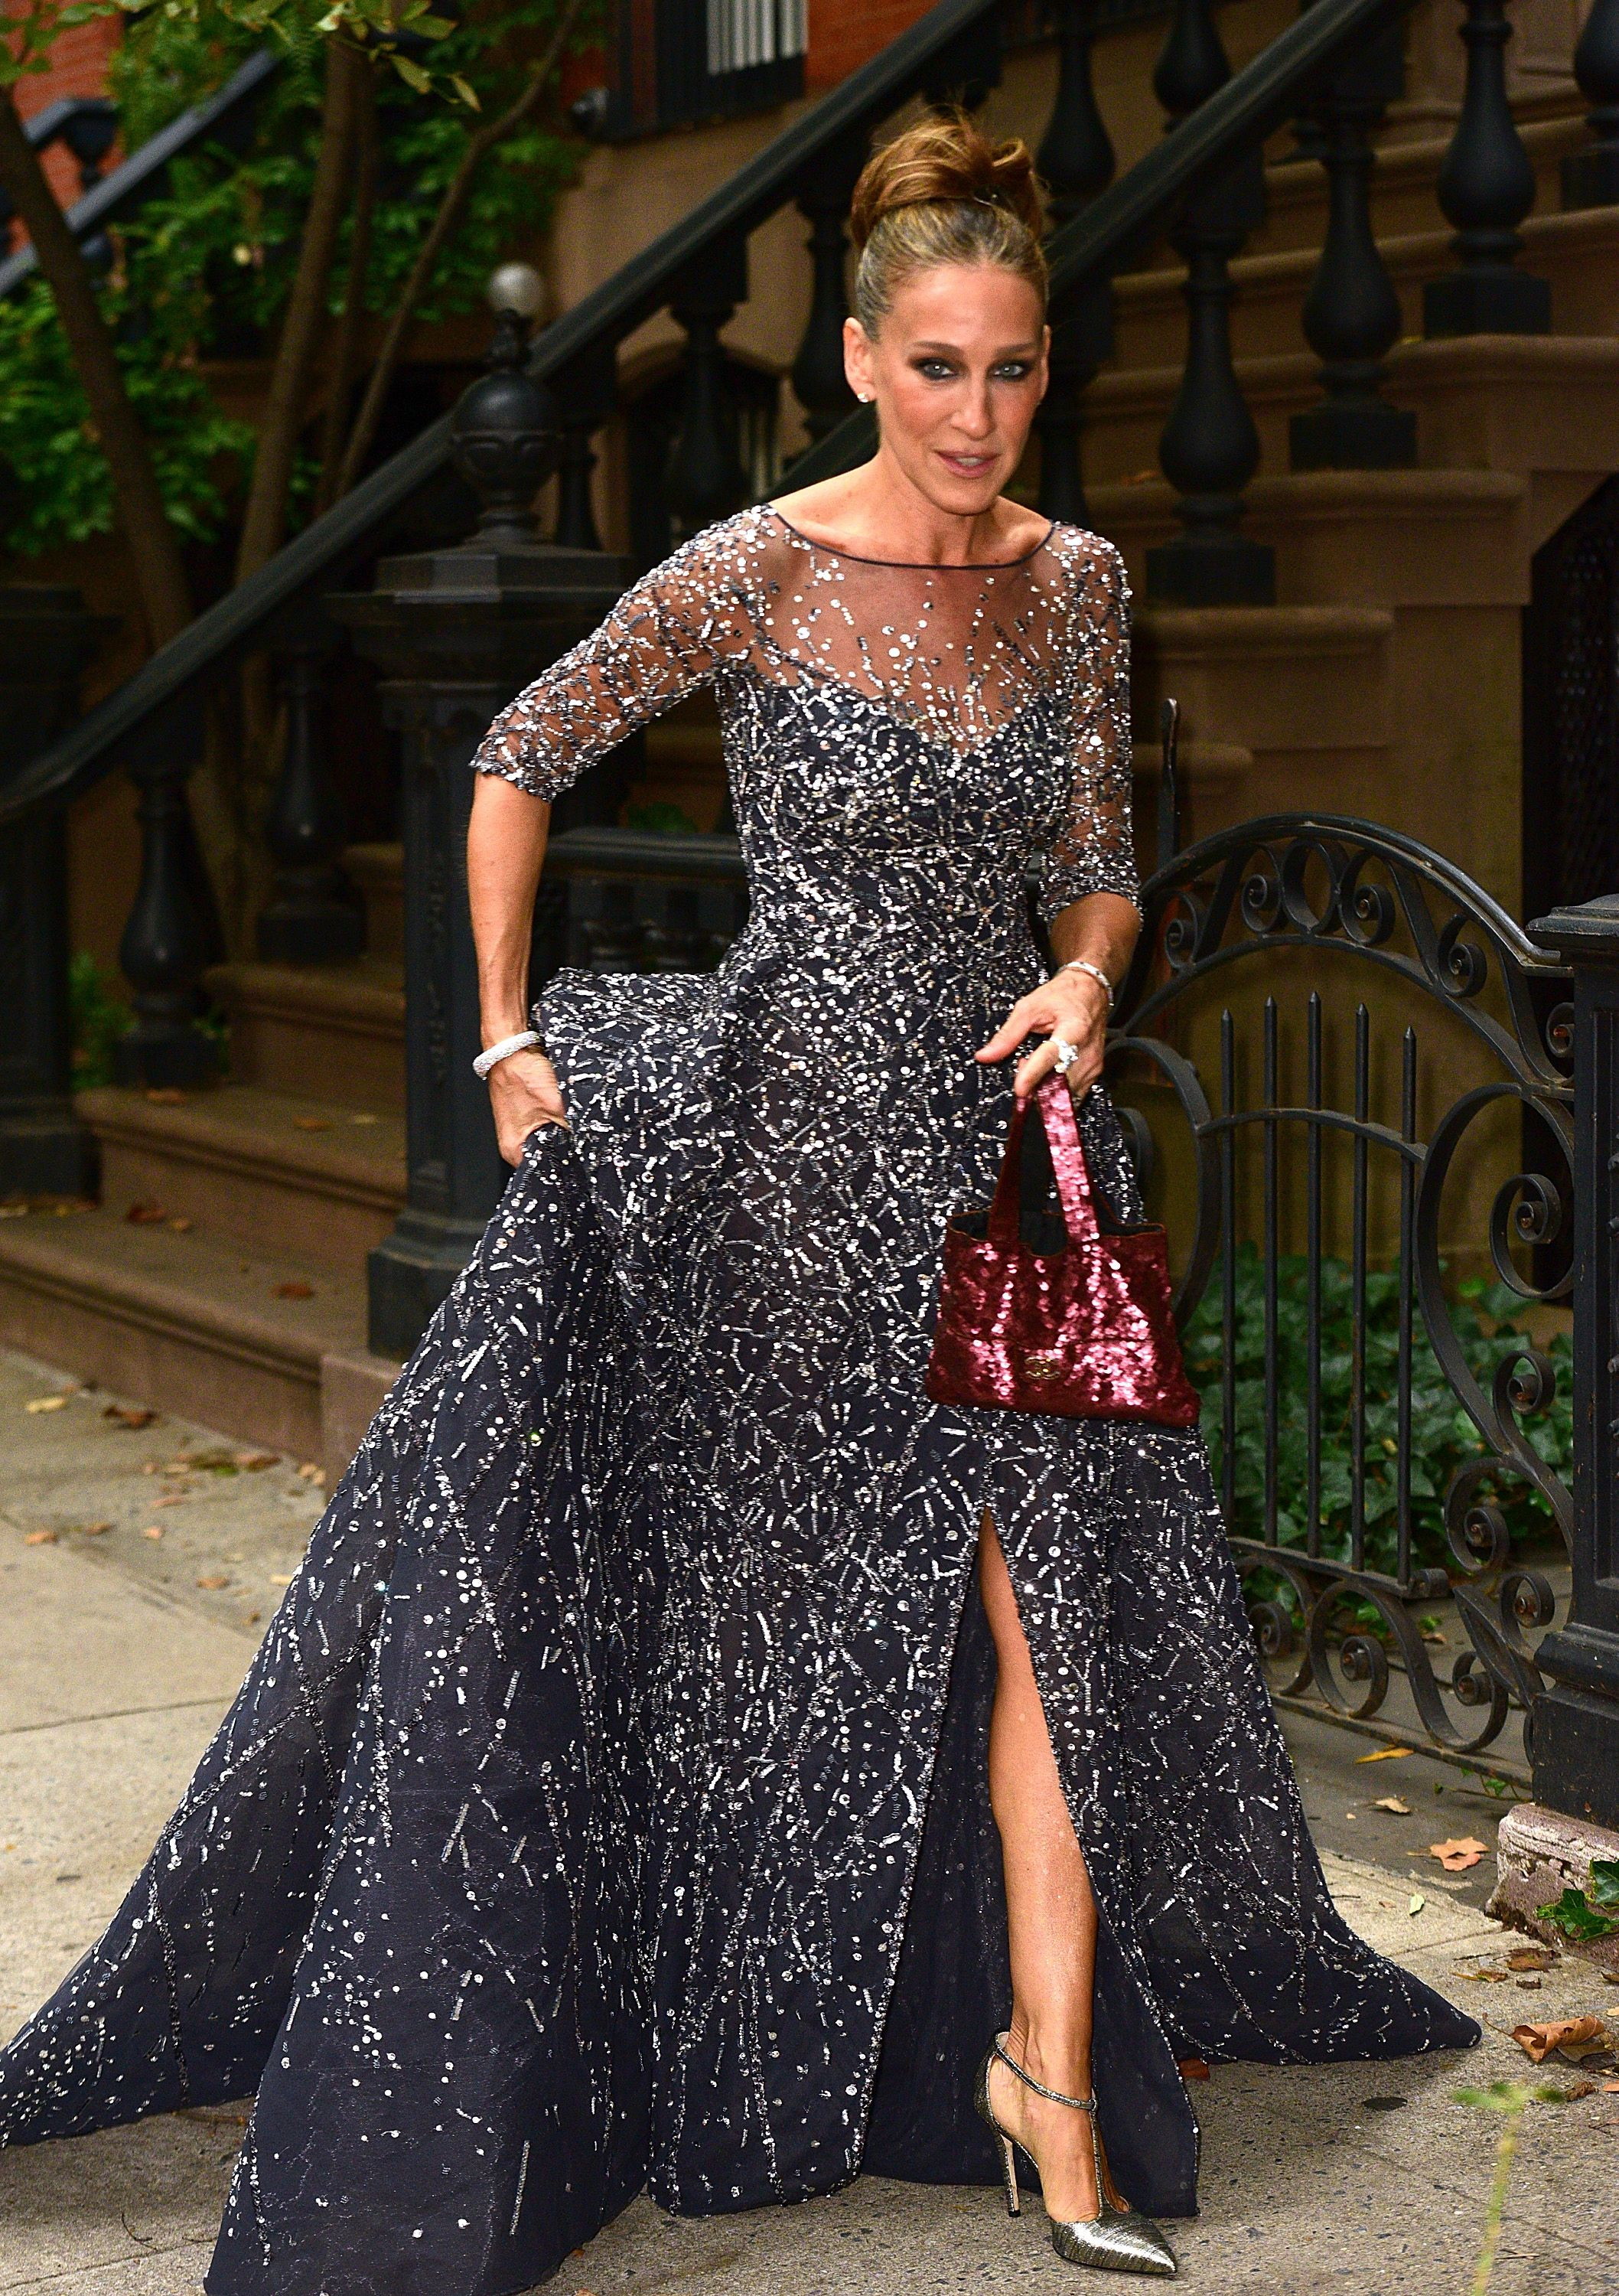 ea2ab5b7af6 Sarah Jessica Parker had a real Carrie Bradshaw moment last night and it  was WONDERFUL